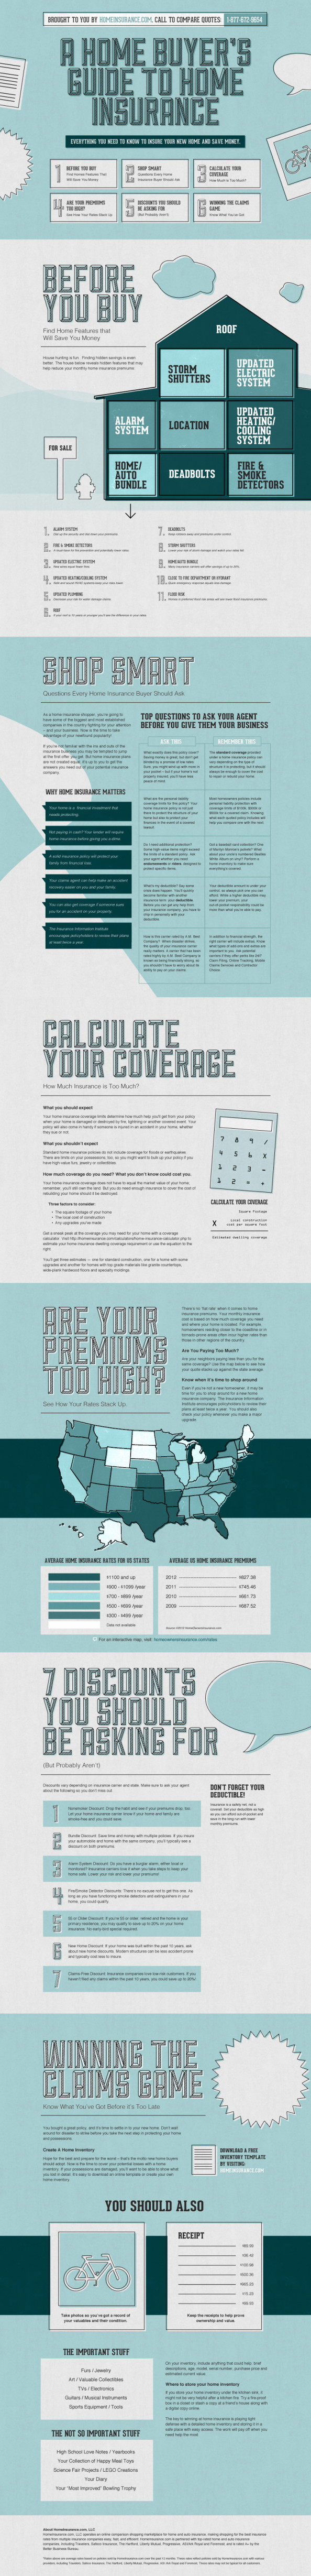 Home Buyers' Guide to Home Insurance Infographic